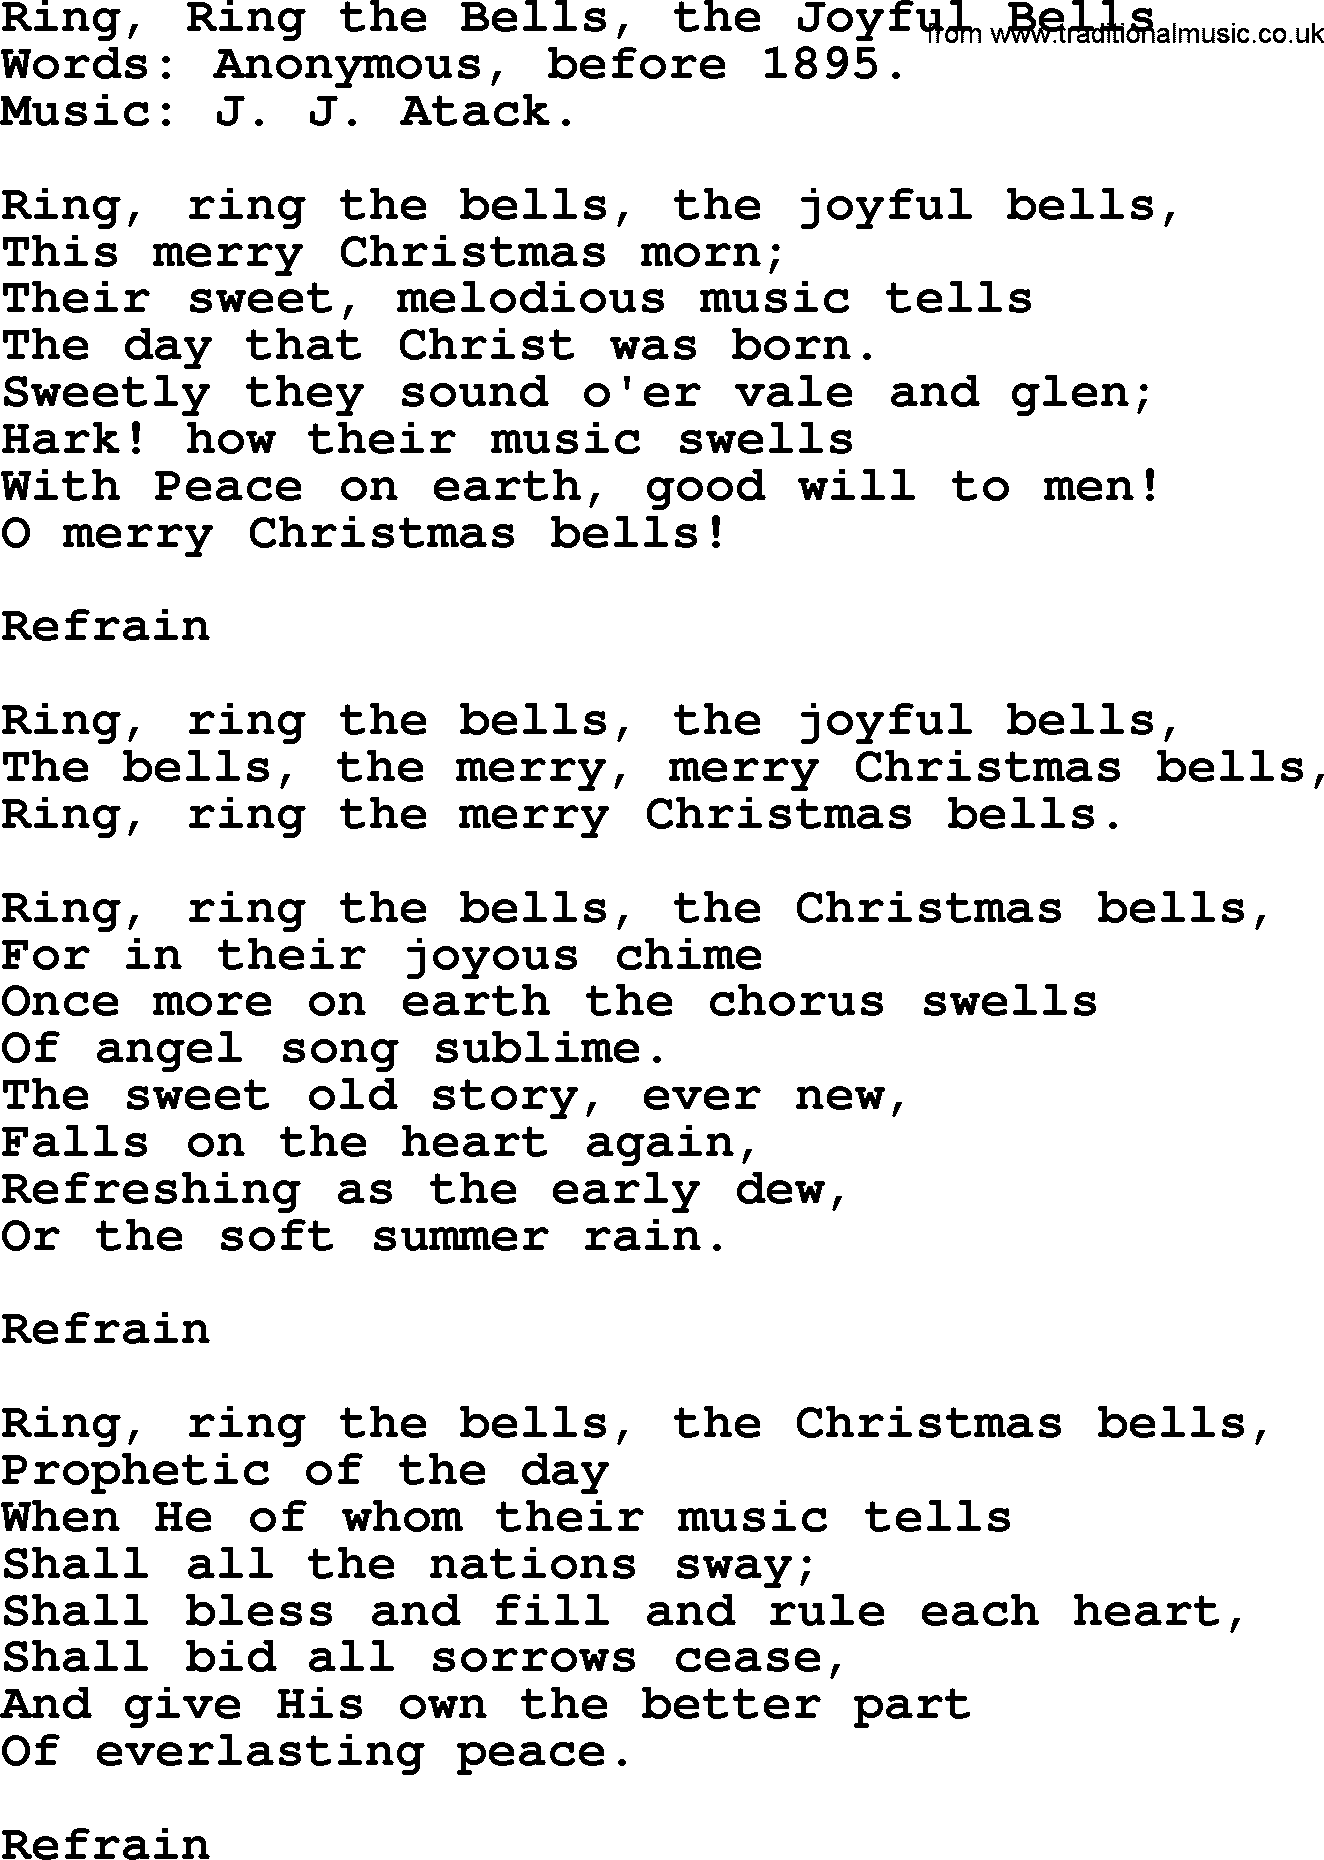 Christmas Hymns, Carols and Songs, title: Ring, Ring The Bells, The Joyful Bells - complete ...